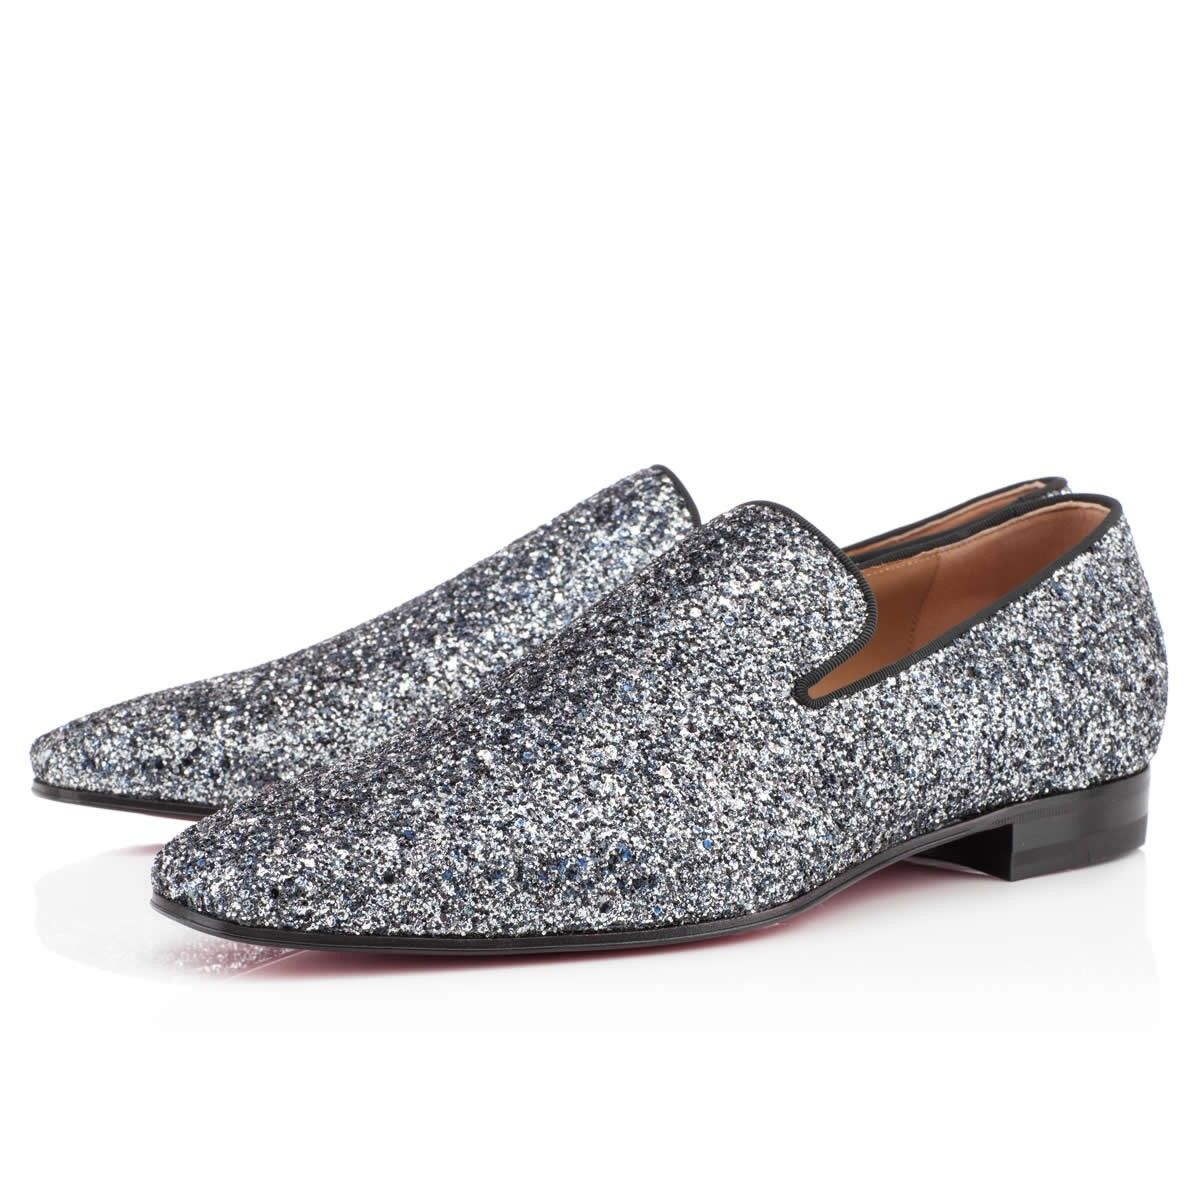 9e01c047194 Living a Beautiful Life ~ Christian Louboutin Mens Dandy Flat Blue Khol  Glitter Loafers